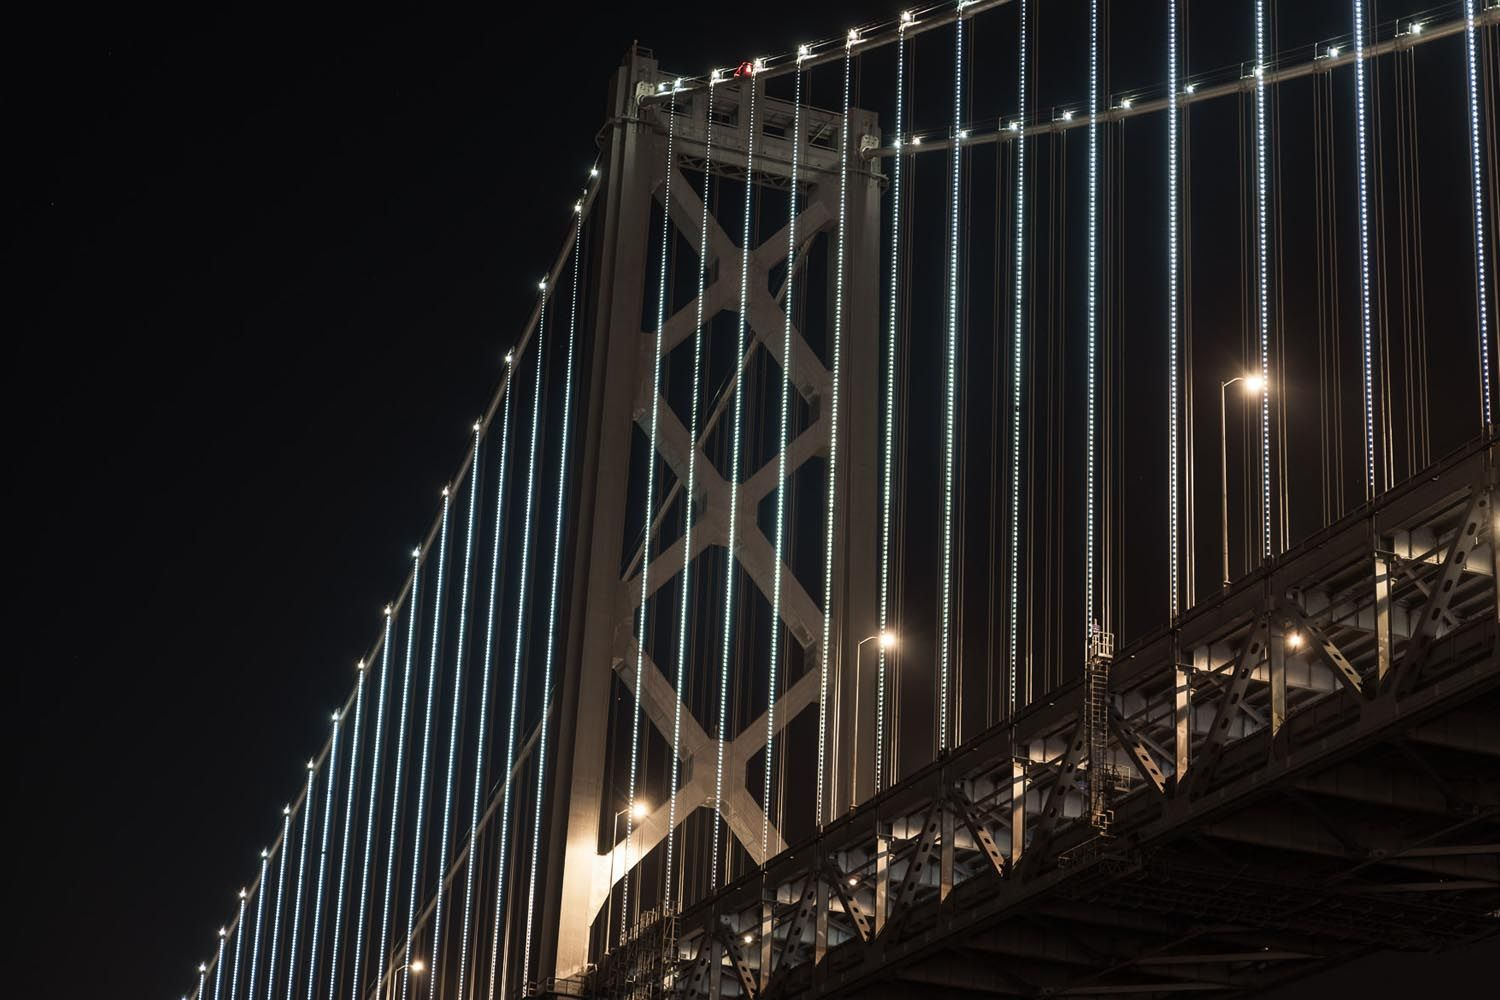 architectural lighting design san francisco oakland bay bridge